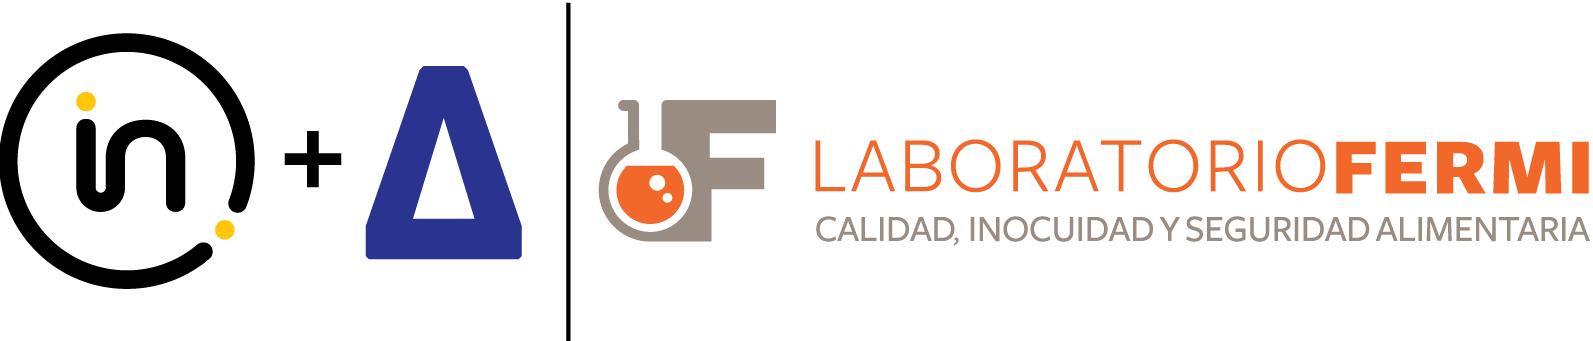 Intertek + ABC Analitic Laboratorio Fermi